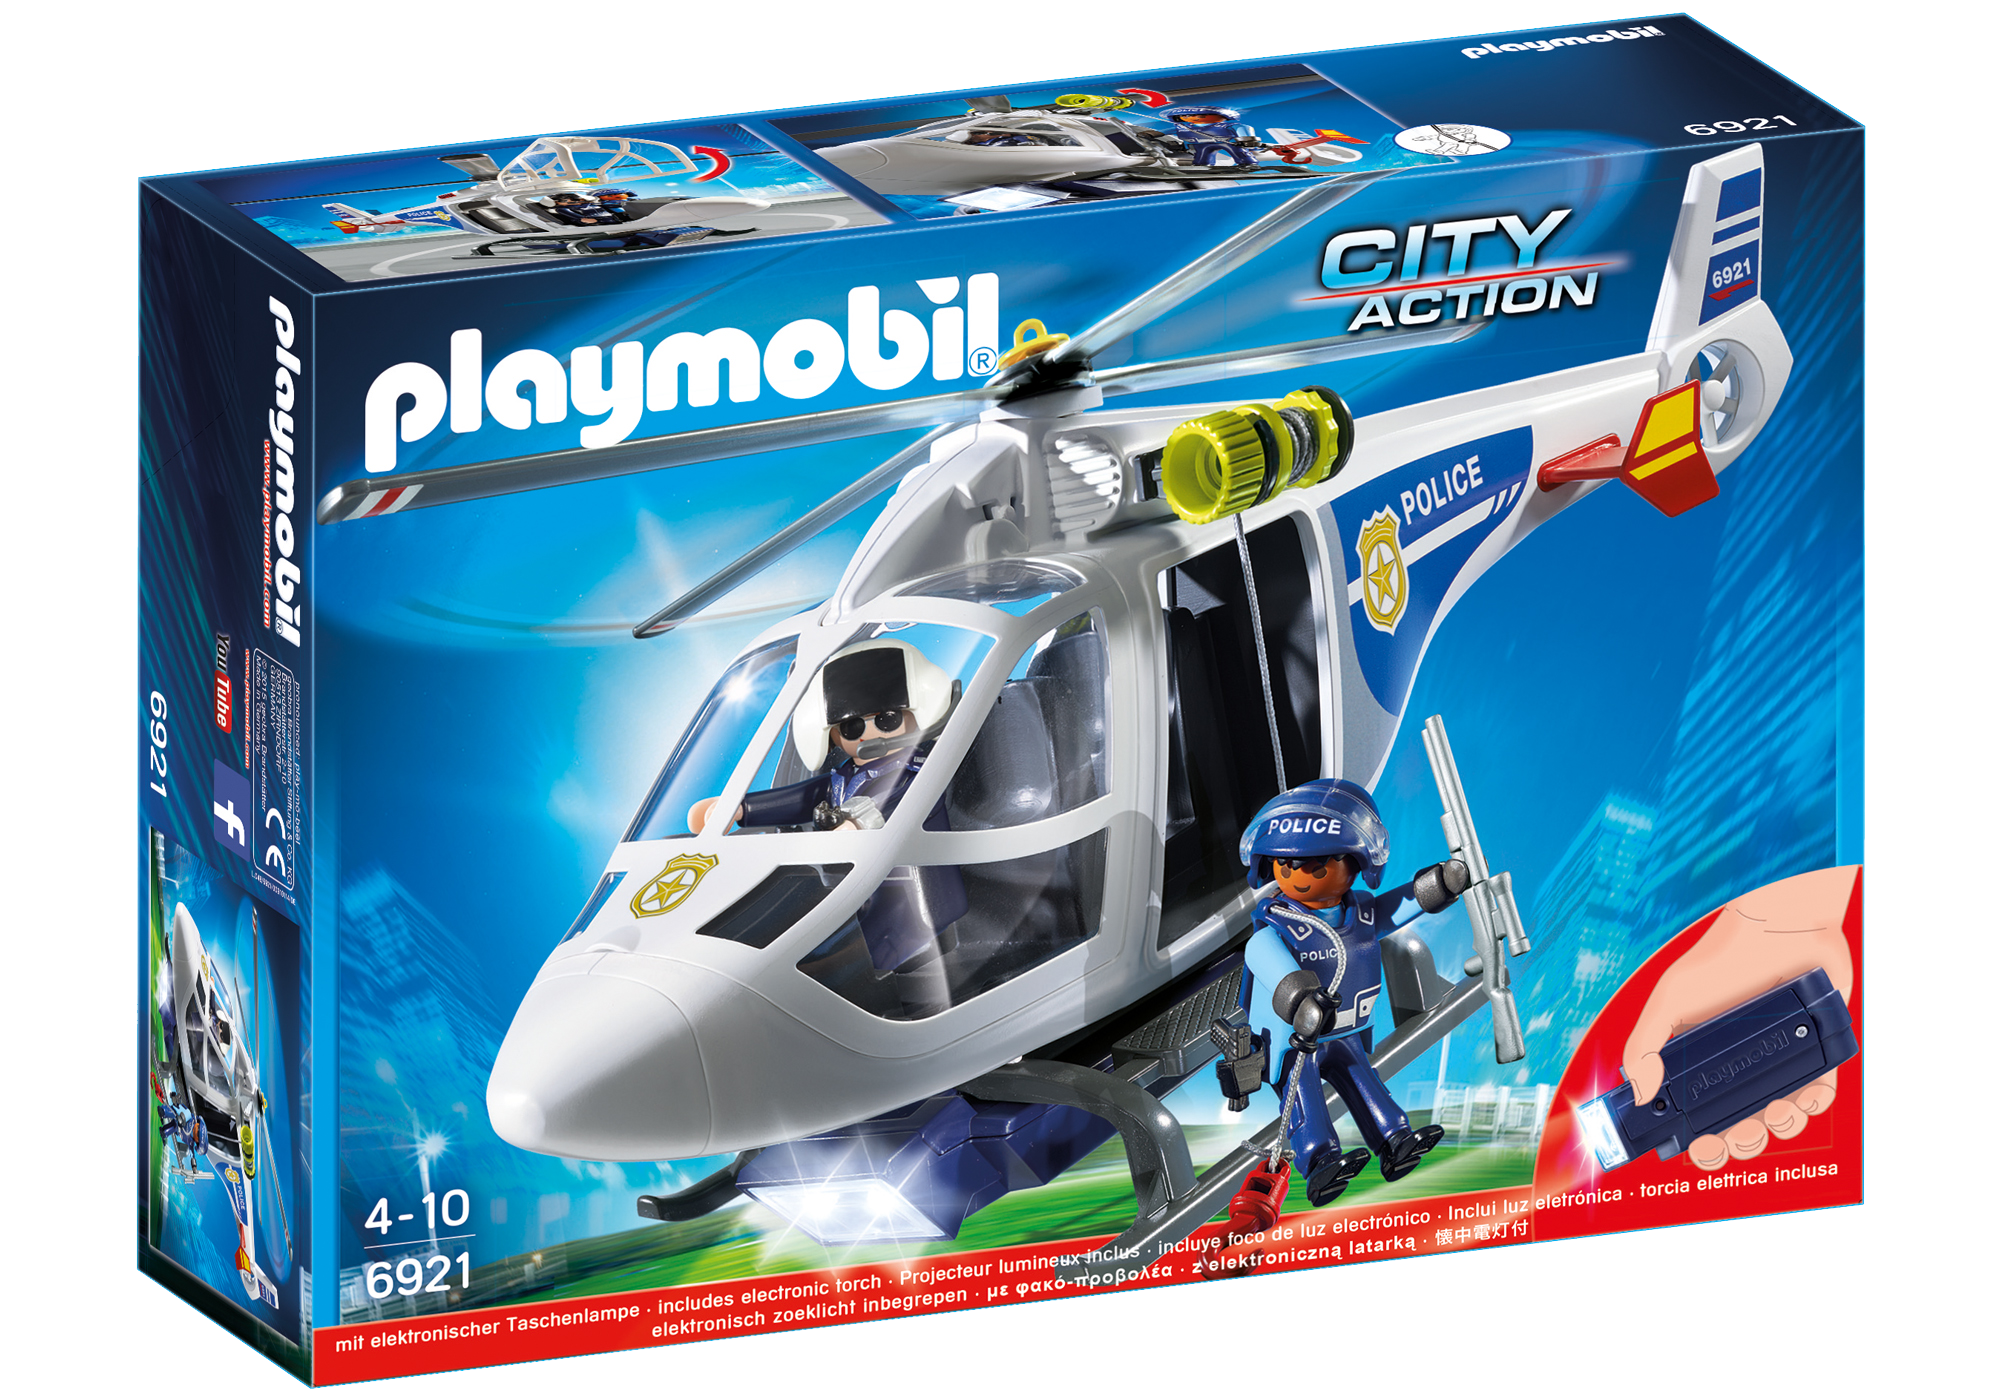 http://media.playmobil.com/i/playmobil/6921_product_box_front/Int. Polizei-Helikopter mit LED-Suchscheinwerfer